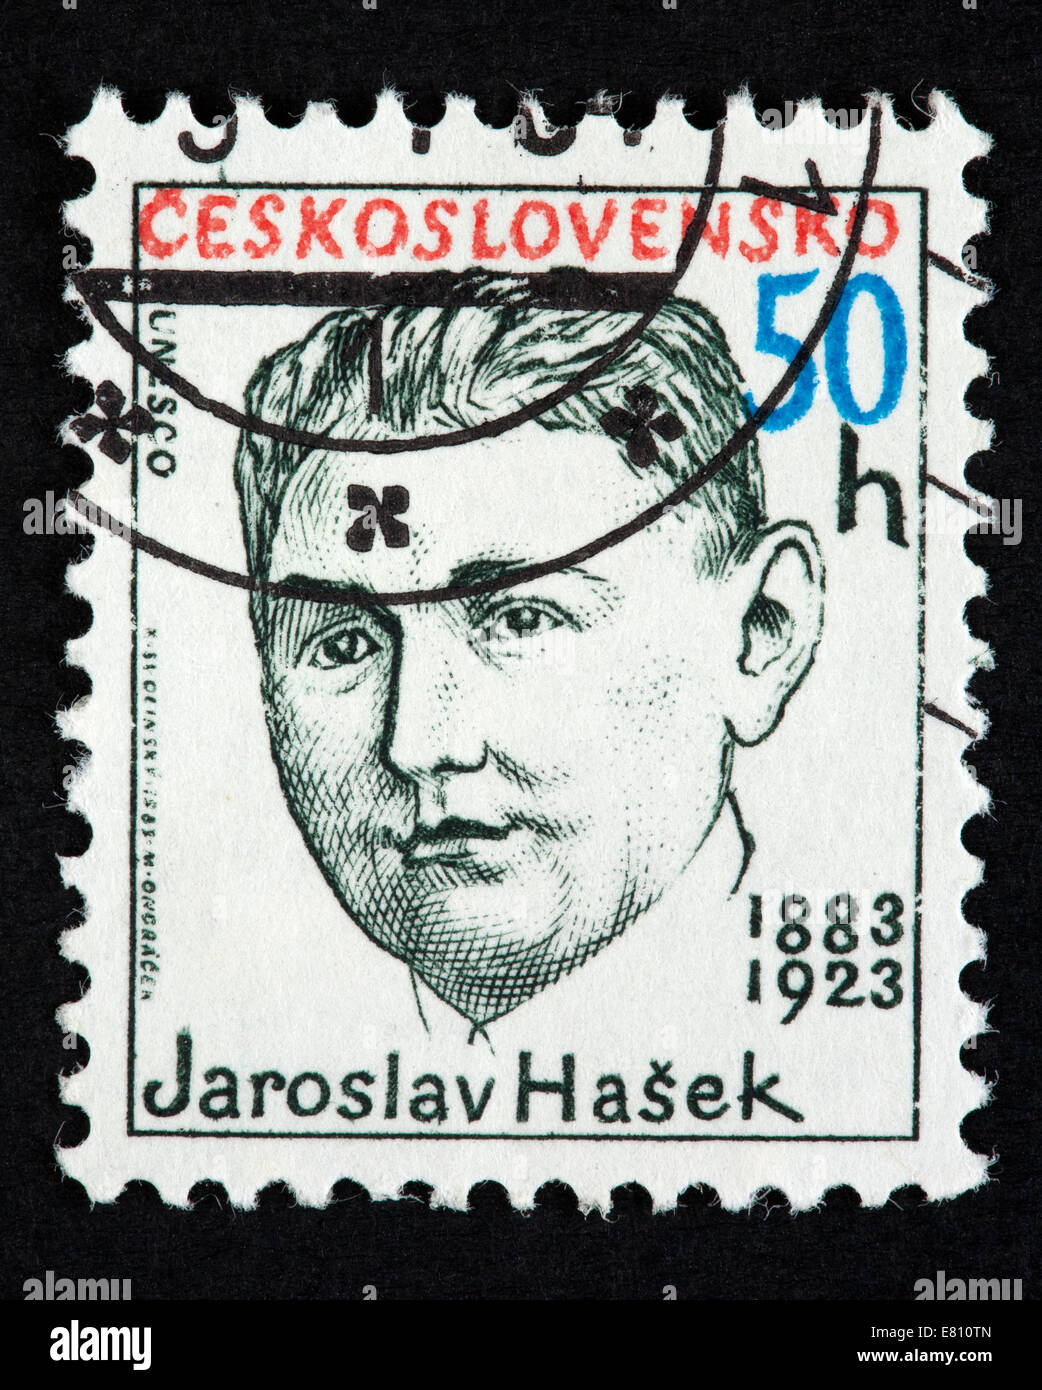 Czechoslovakian postage stamp Stock Photo